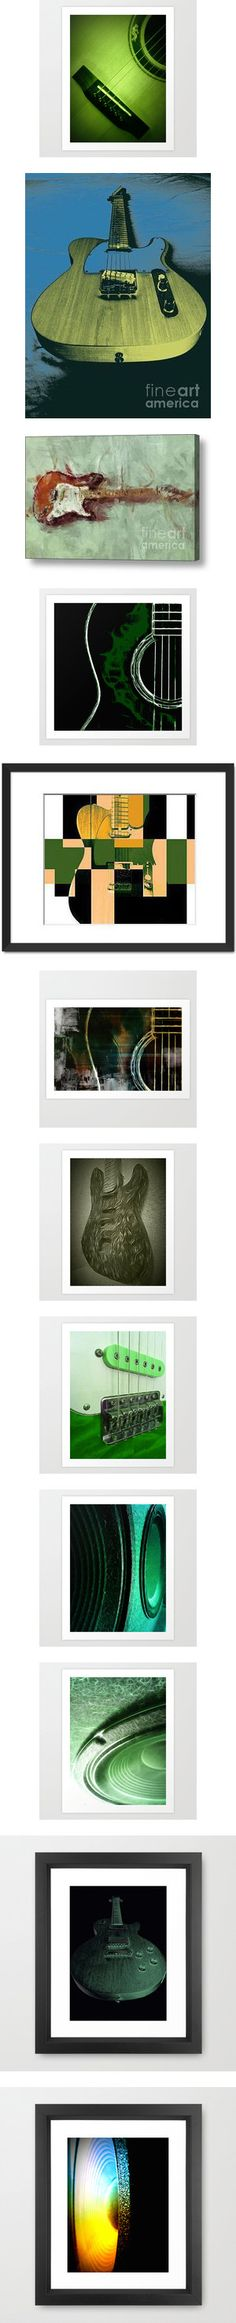 Green Guitar Art by Eric Rasmussen by christy-leigh-1 on Polyvore featuring home, home decor, wall art, guitar, green home decor, green wall art, pop art, framed wall art, art and abstract home decor